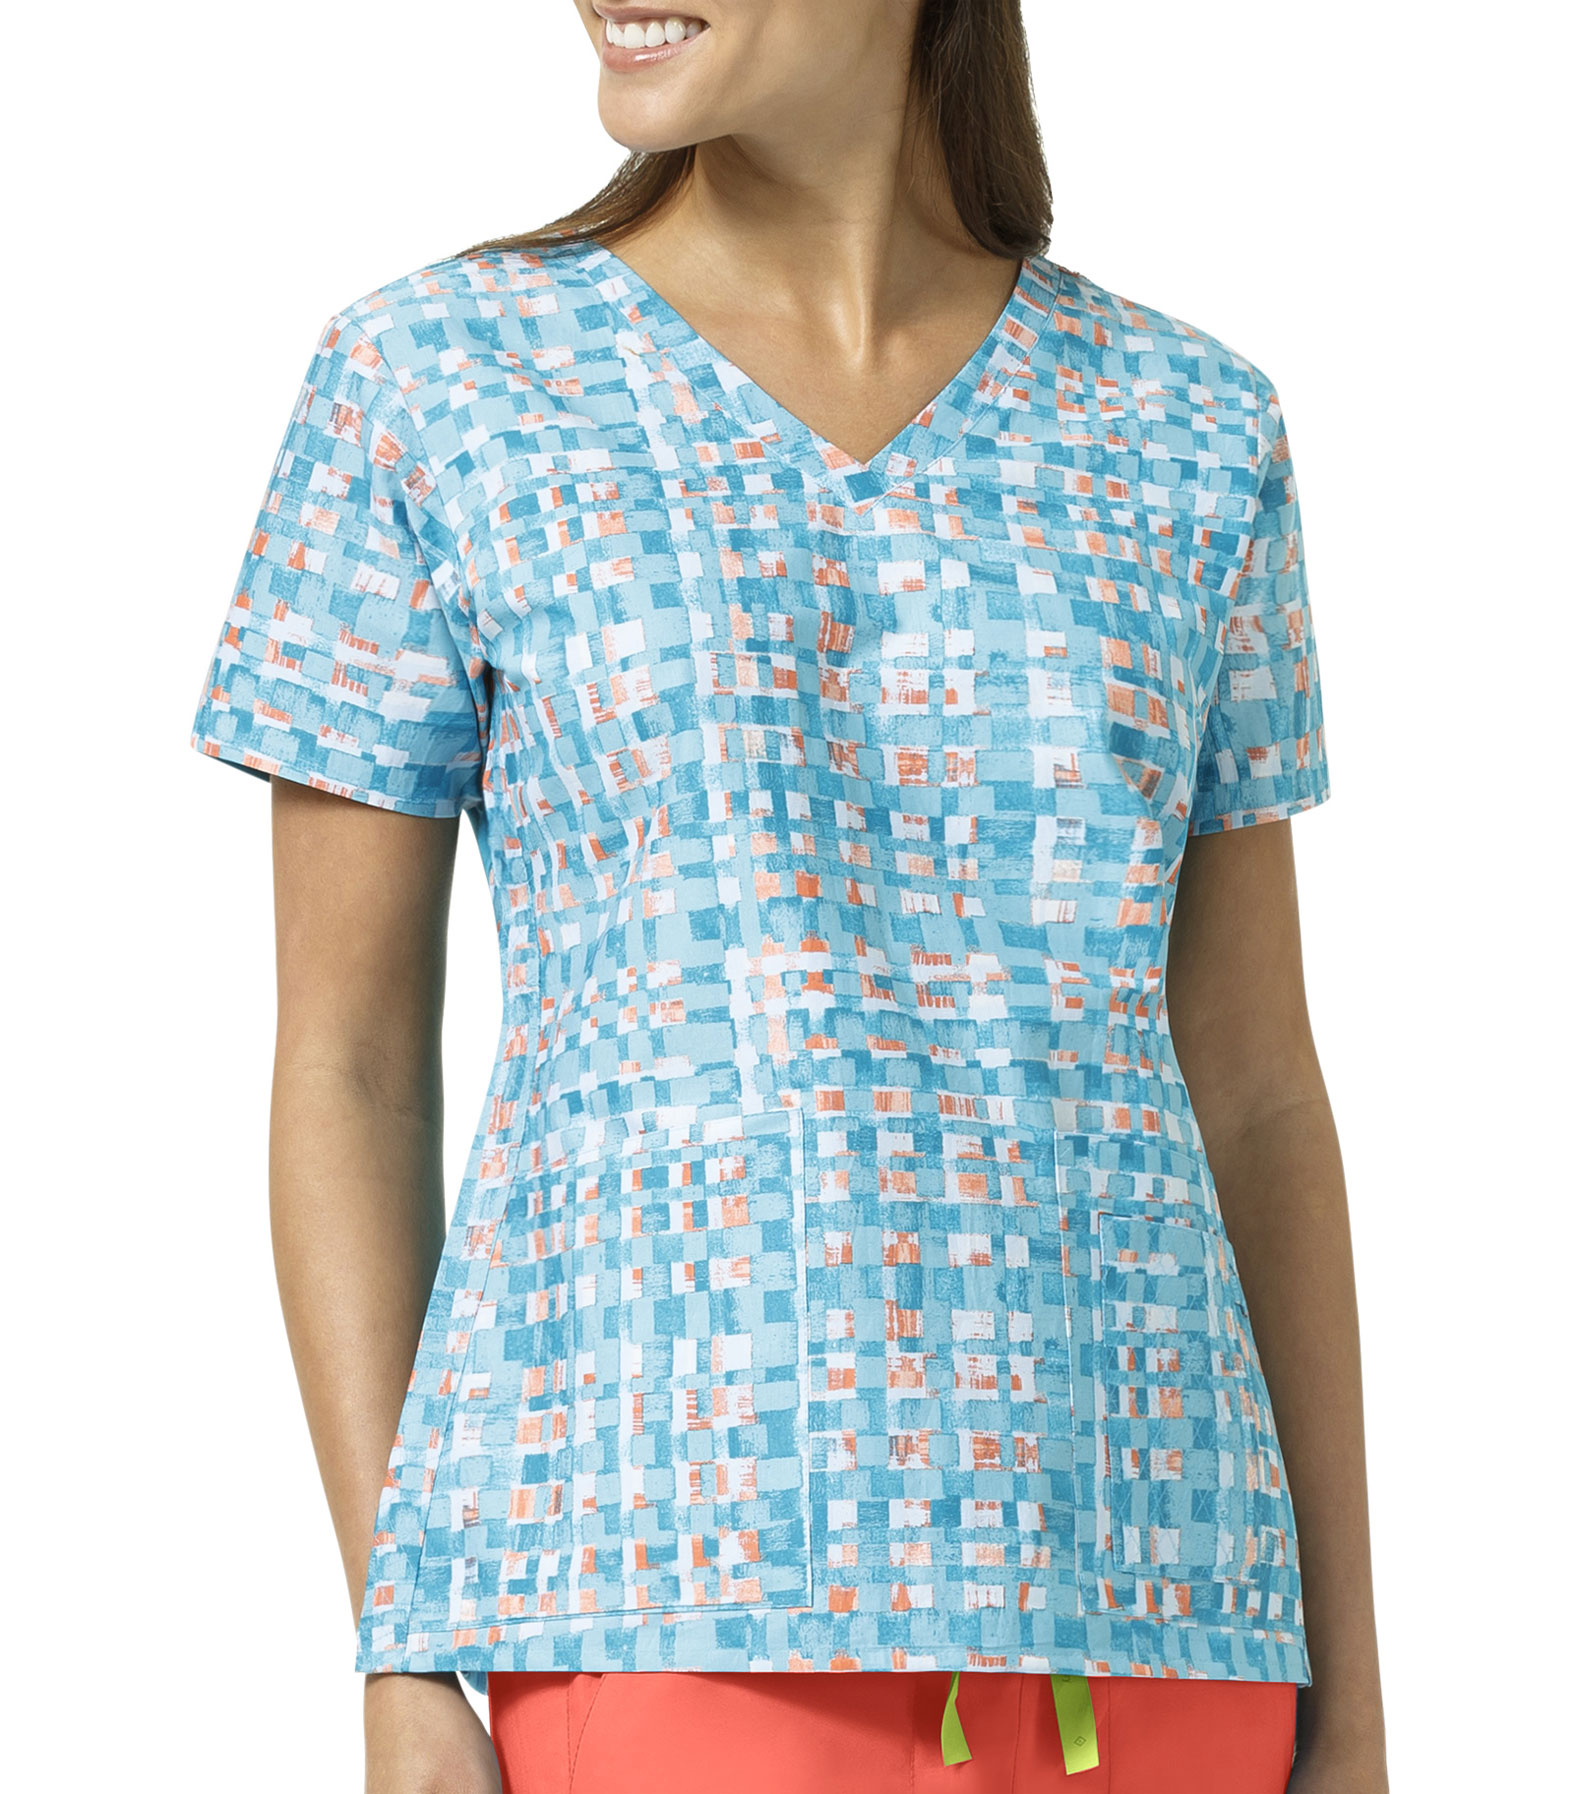 Abstract Blocks Ladies V-Neck Print Top By Vera Bradley